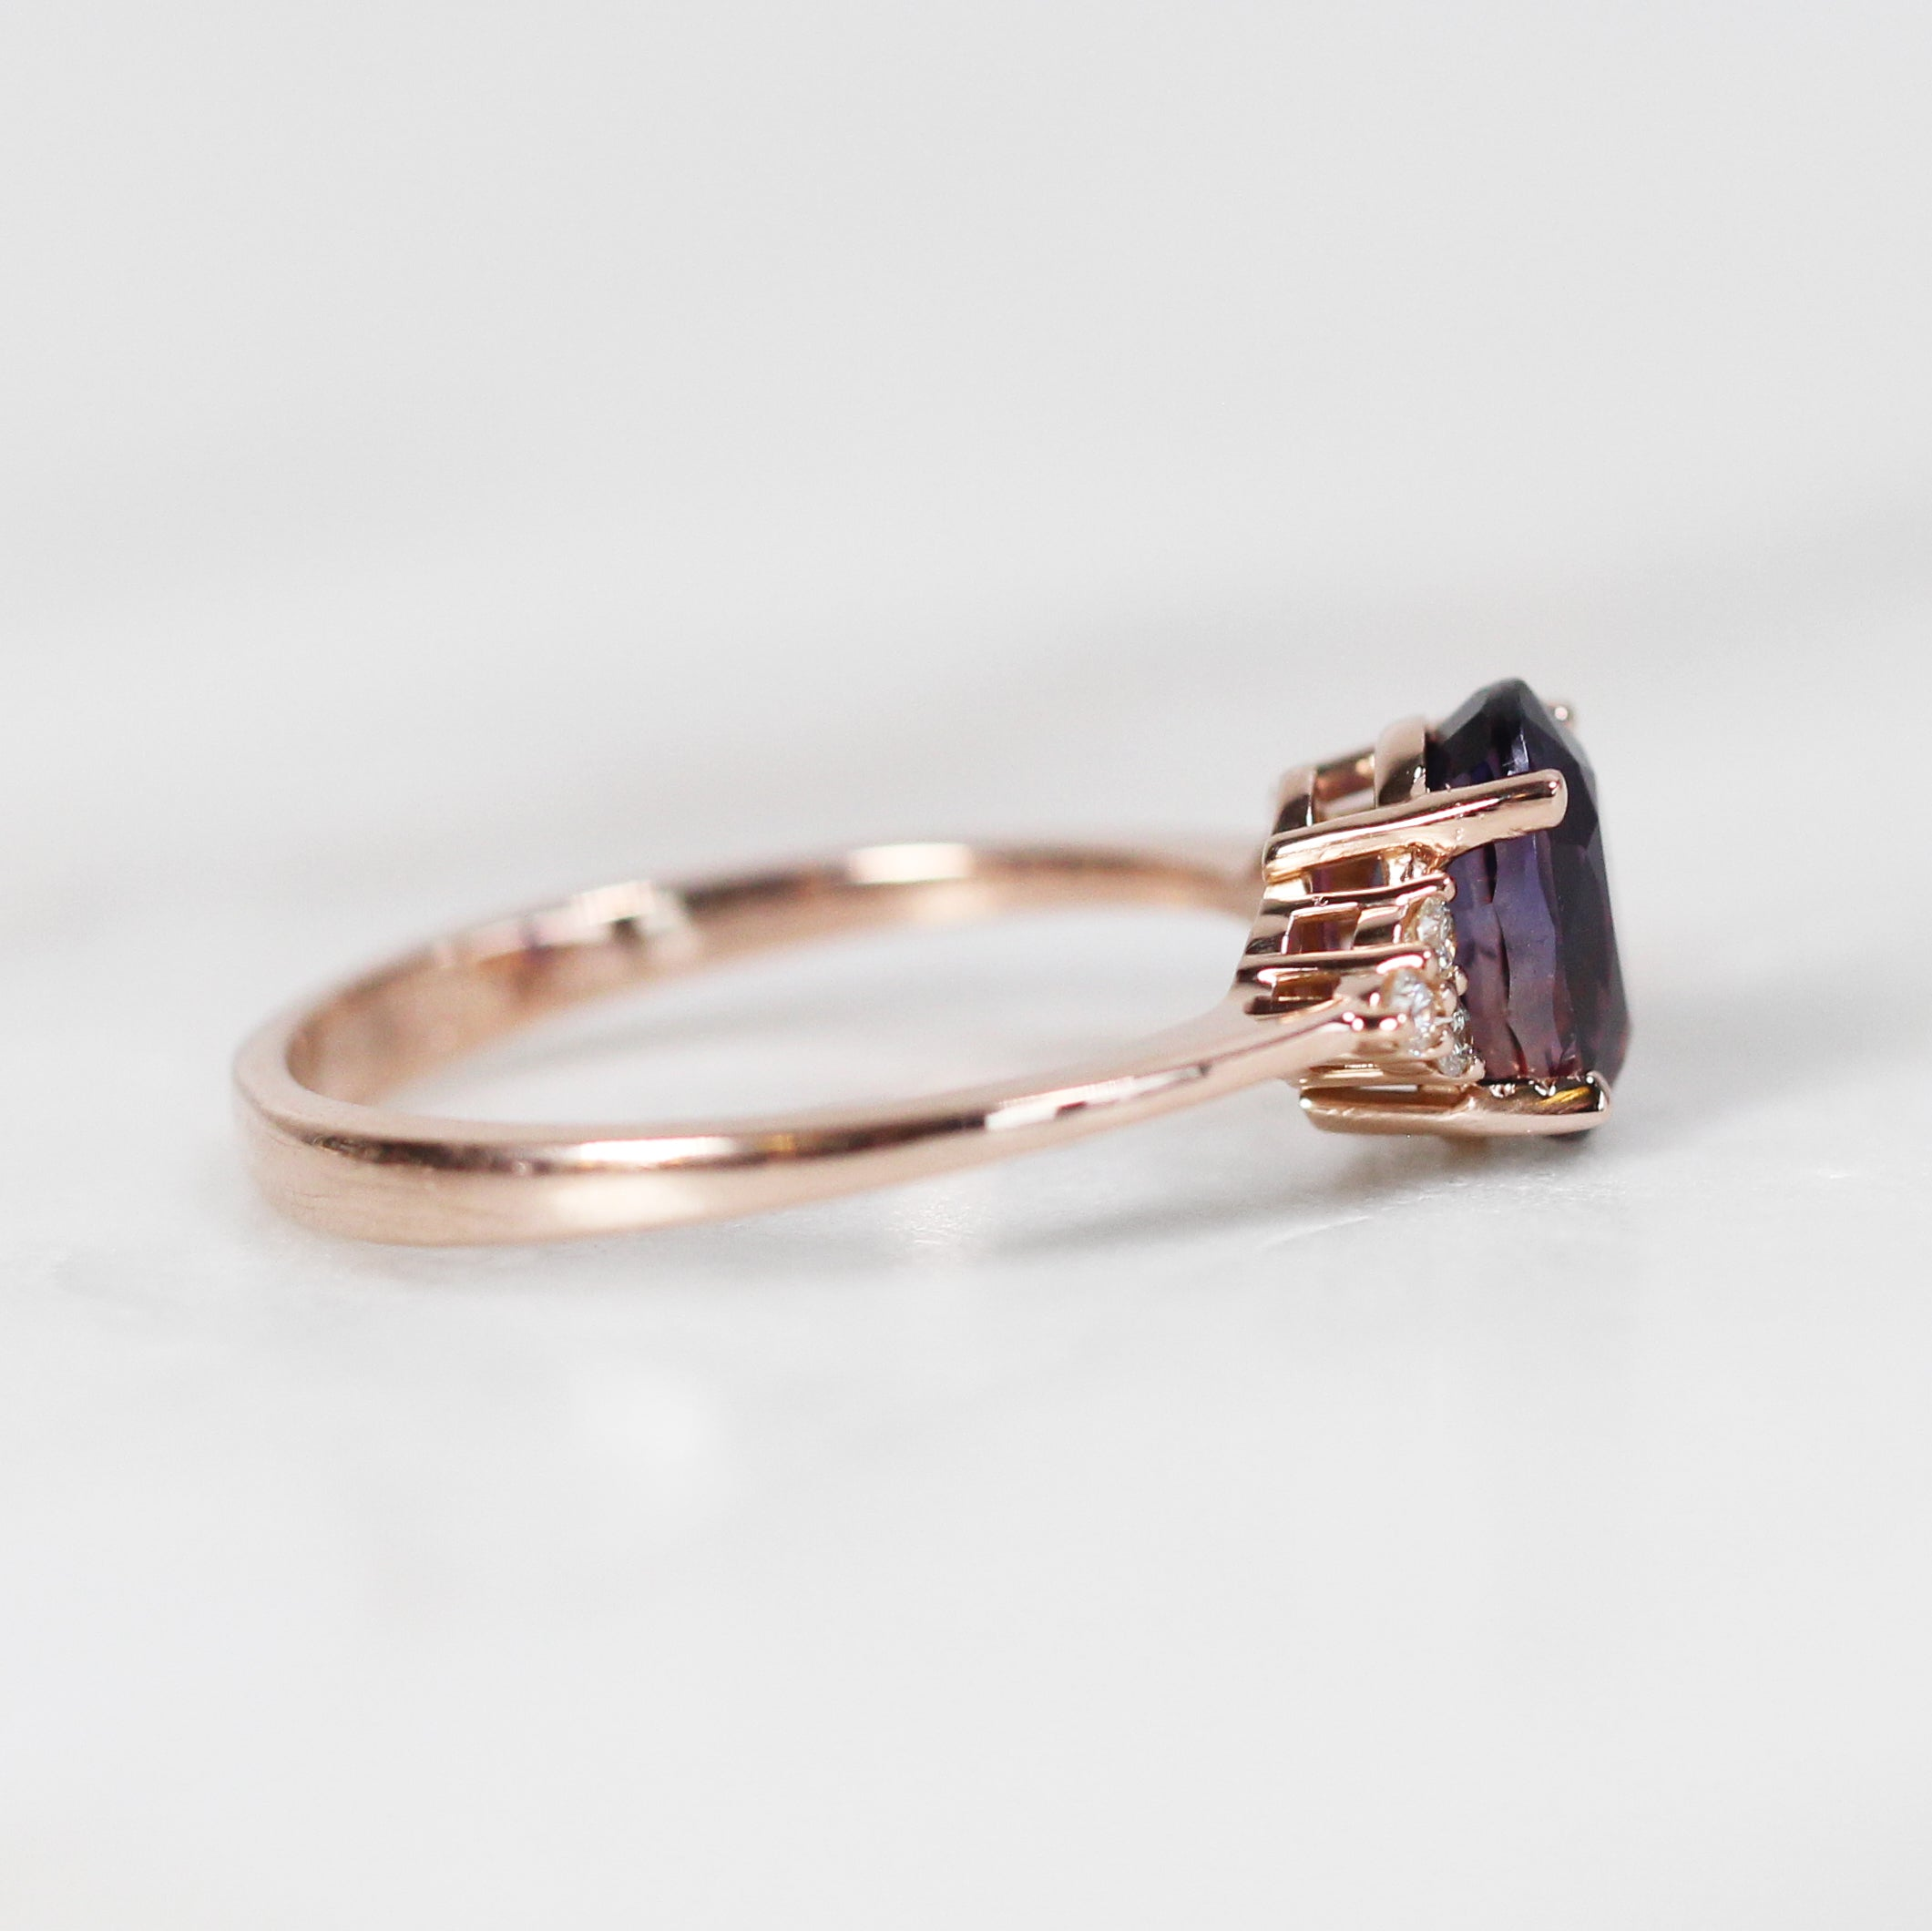 Imogene Ring with 2.10 Carat Oval Purple Sapphire in 10k Rose Gold - Celestial Diamonds ® by Midwinter Co.